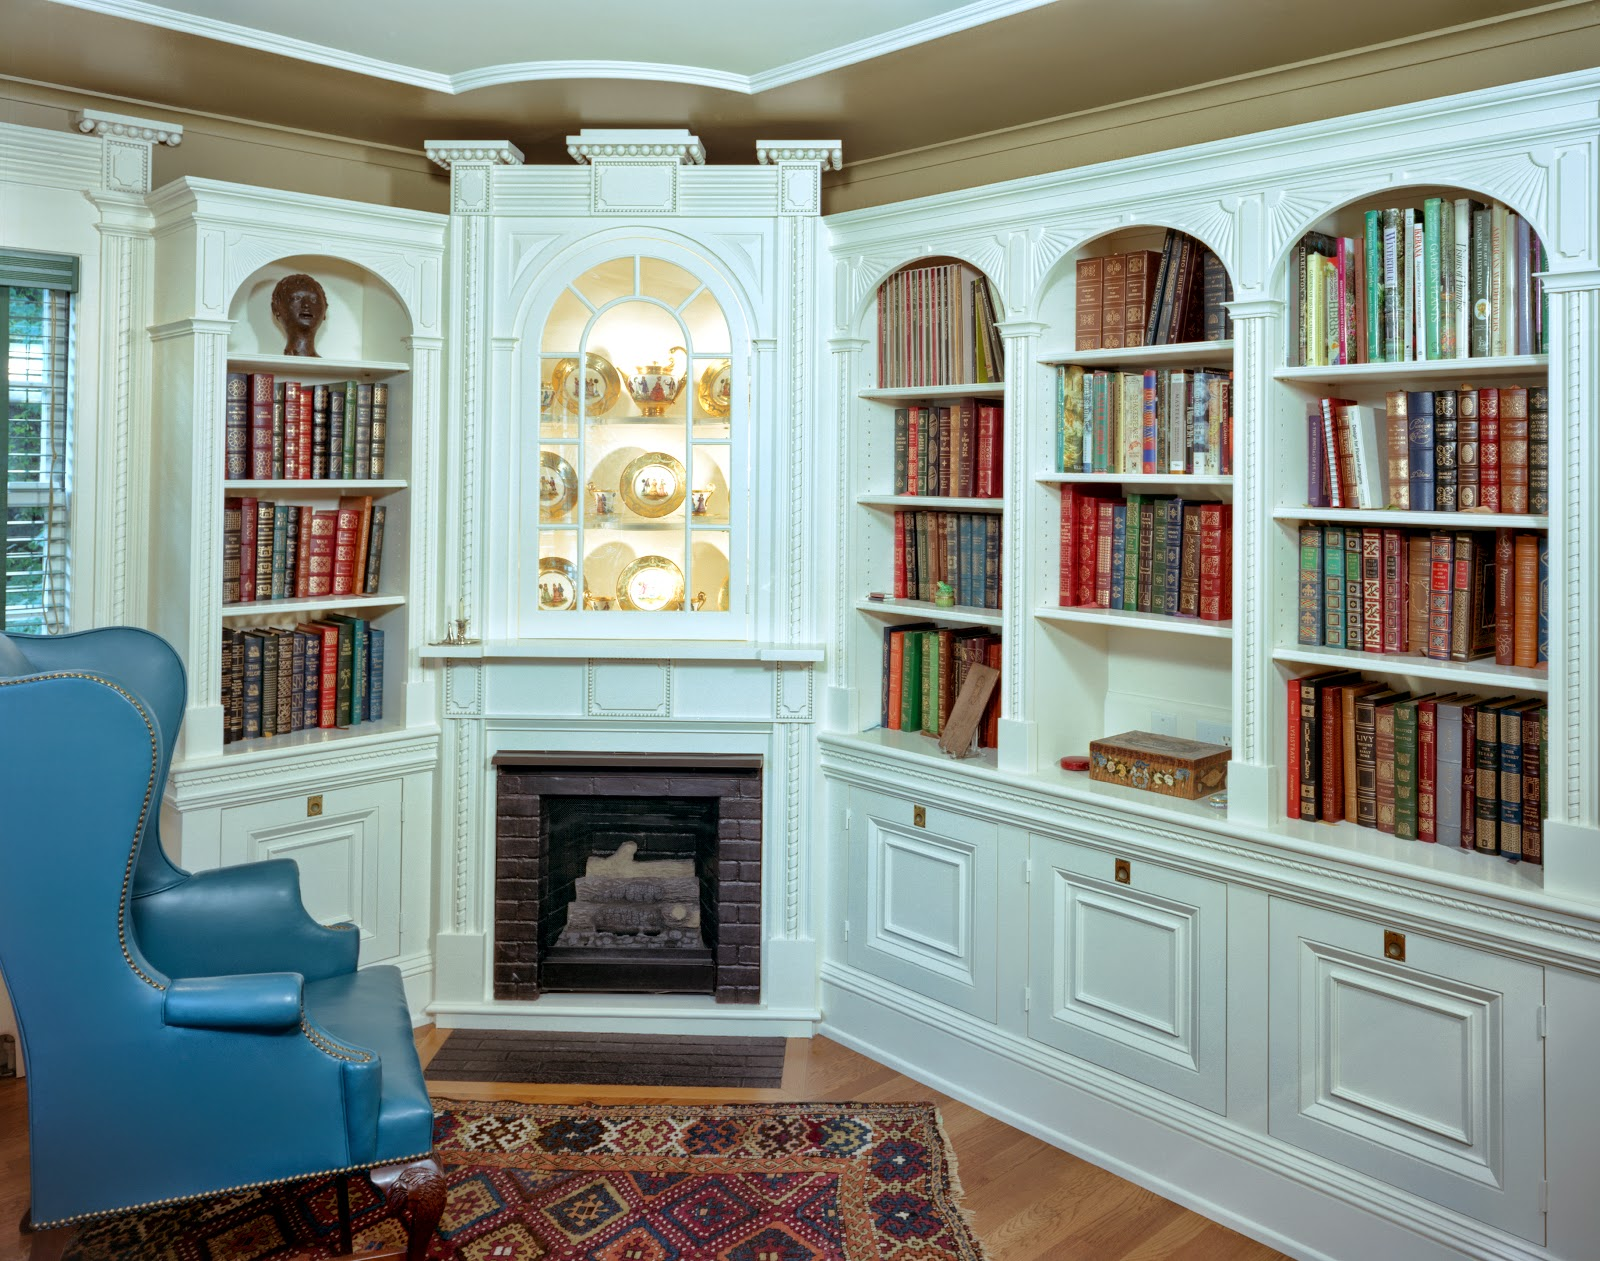 various decorative elements of the original library together with the requirements of a modern home